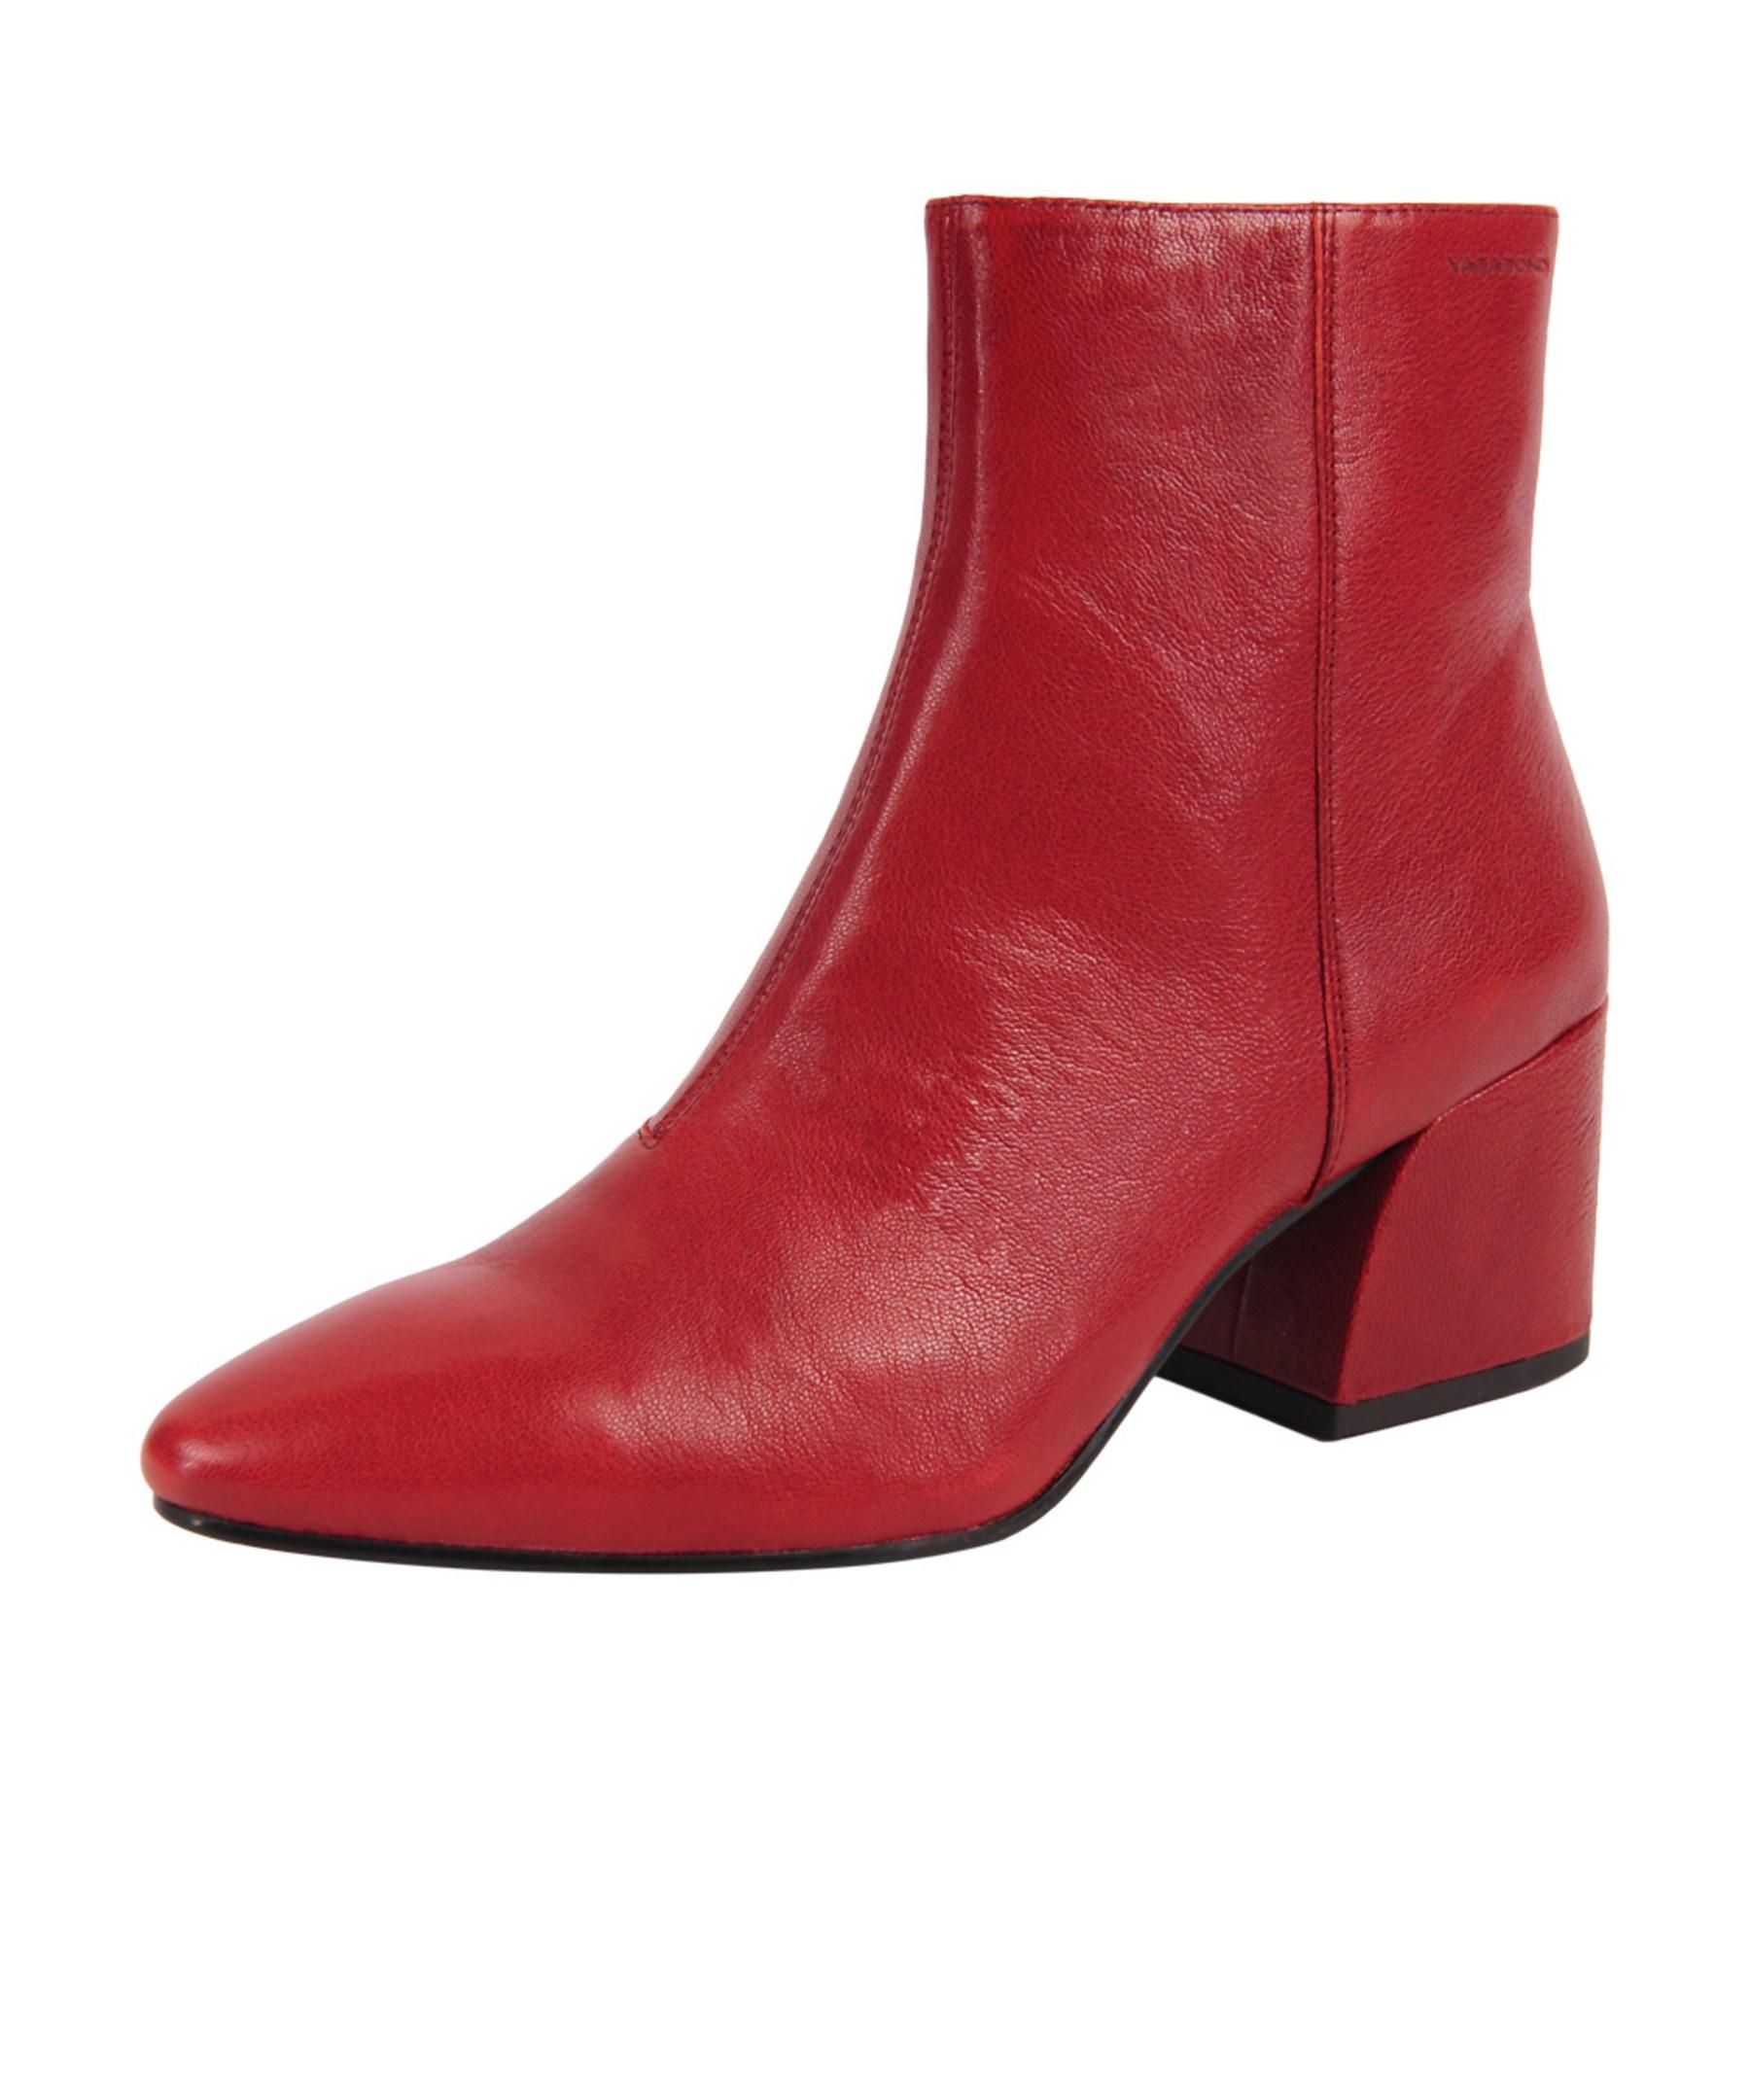 Vagabond Olivia Boots In Red